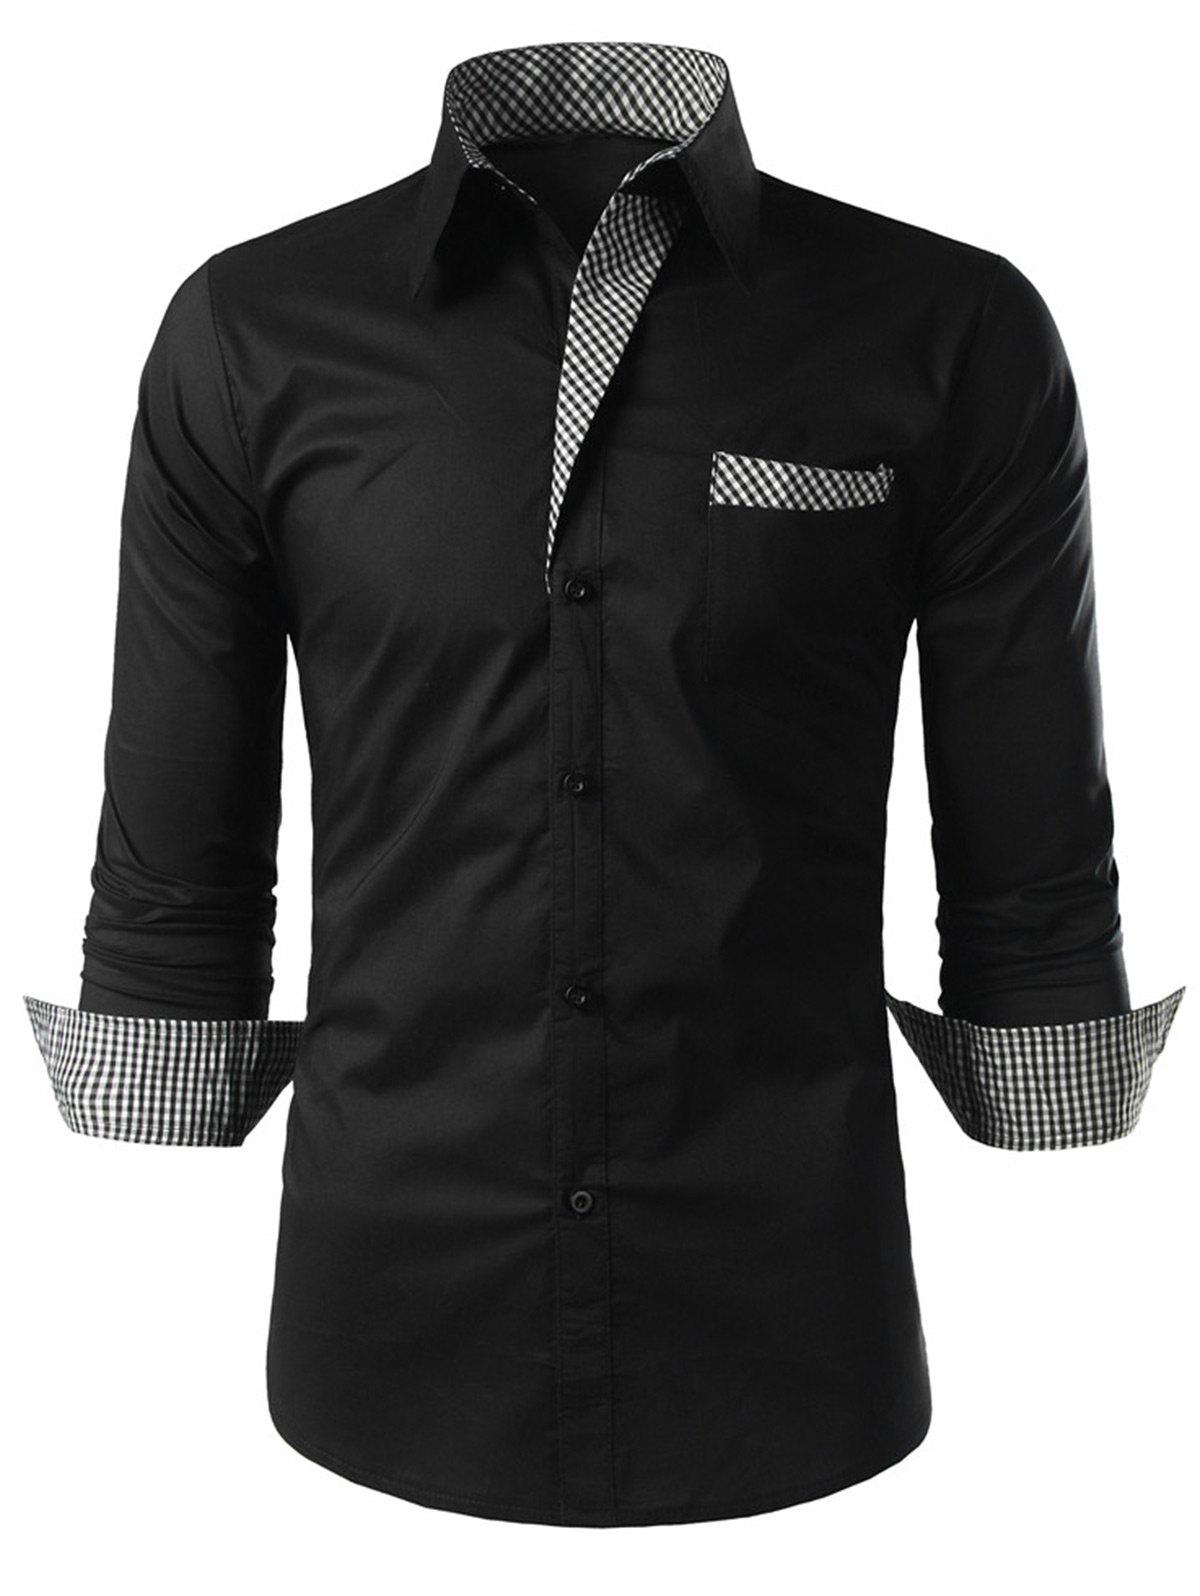 Plaid Trim Long Sleeve ShirtMEN<br><br>Size: L; Color: BLACK; Shirts Type: Casual Shirts; Material: Polyester; Sleeve Length: Full; Collar: Turn-down Collar; Pattern Type: Plaid; Weight: 0.2500kg; Package Contents: 1 x Shirt;